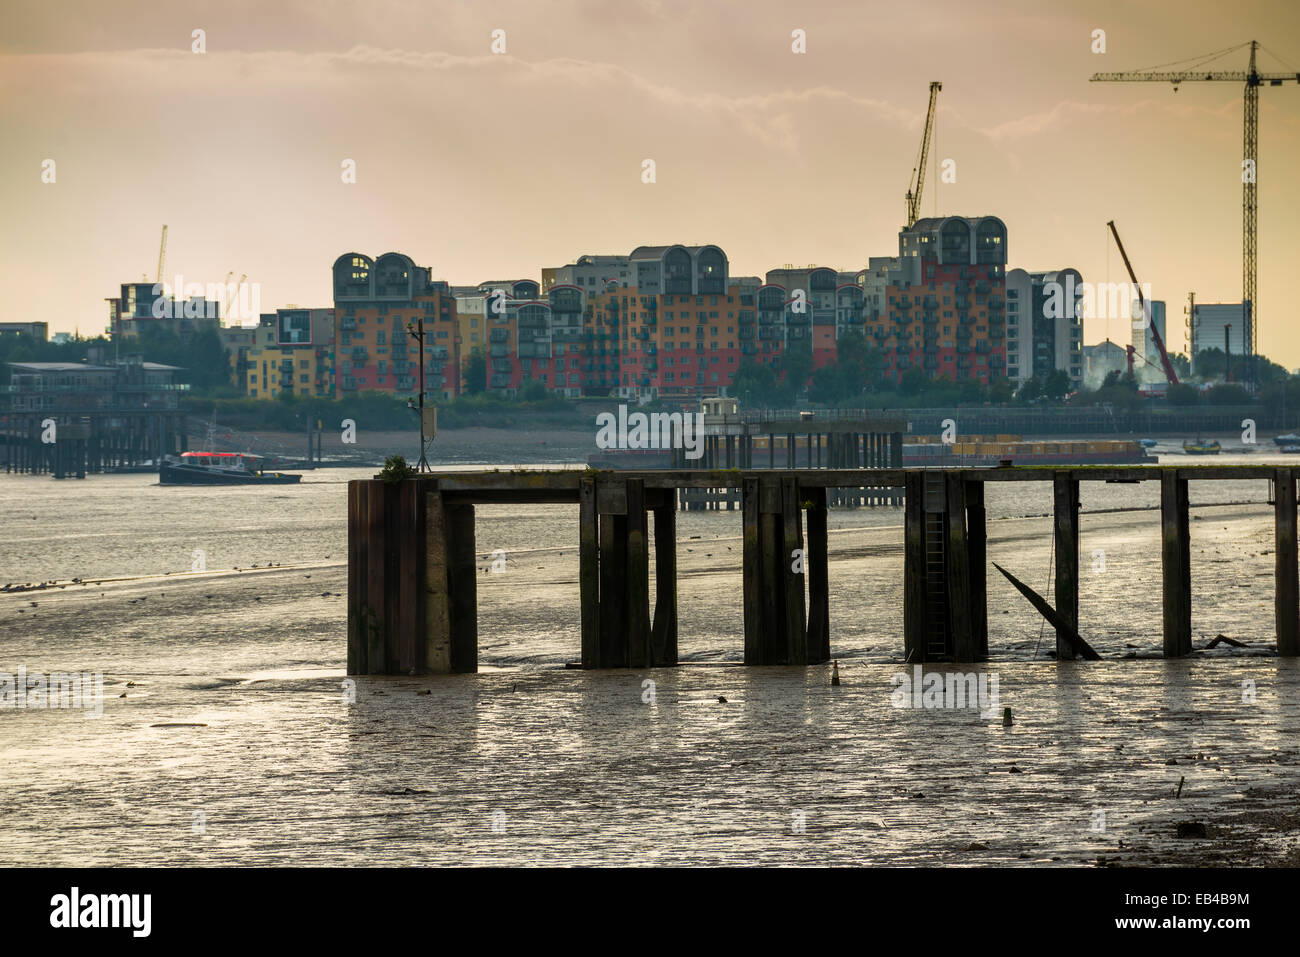 Tide out on the River Thames revealing mud banks; looking towards modern residential flats and appartments in Greenwich, - Stock Image